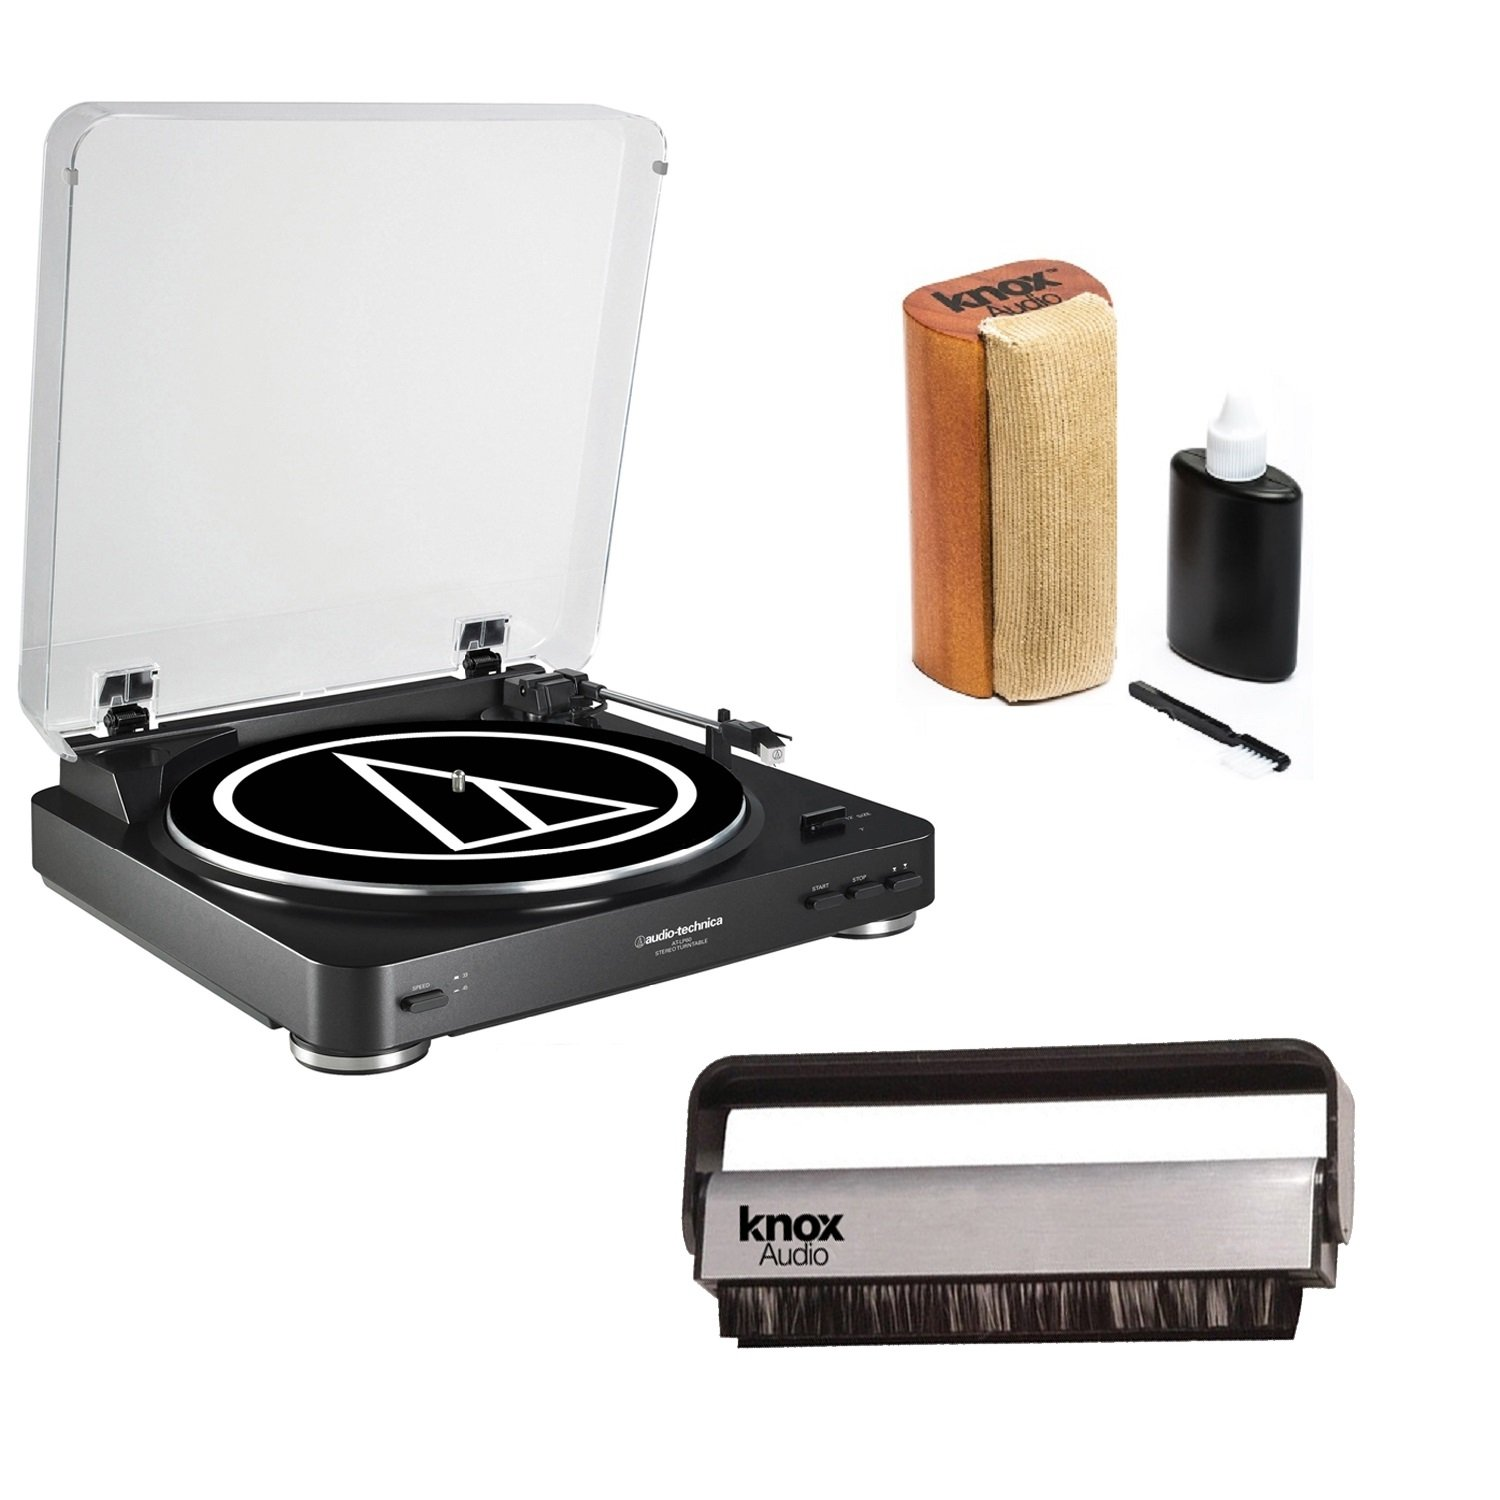 Audio Technica AT-LP60BK Turntable w/ Knox Vinyl Brush Cleaner & Cleaning Kit